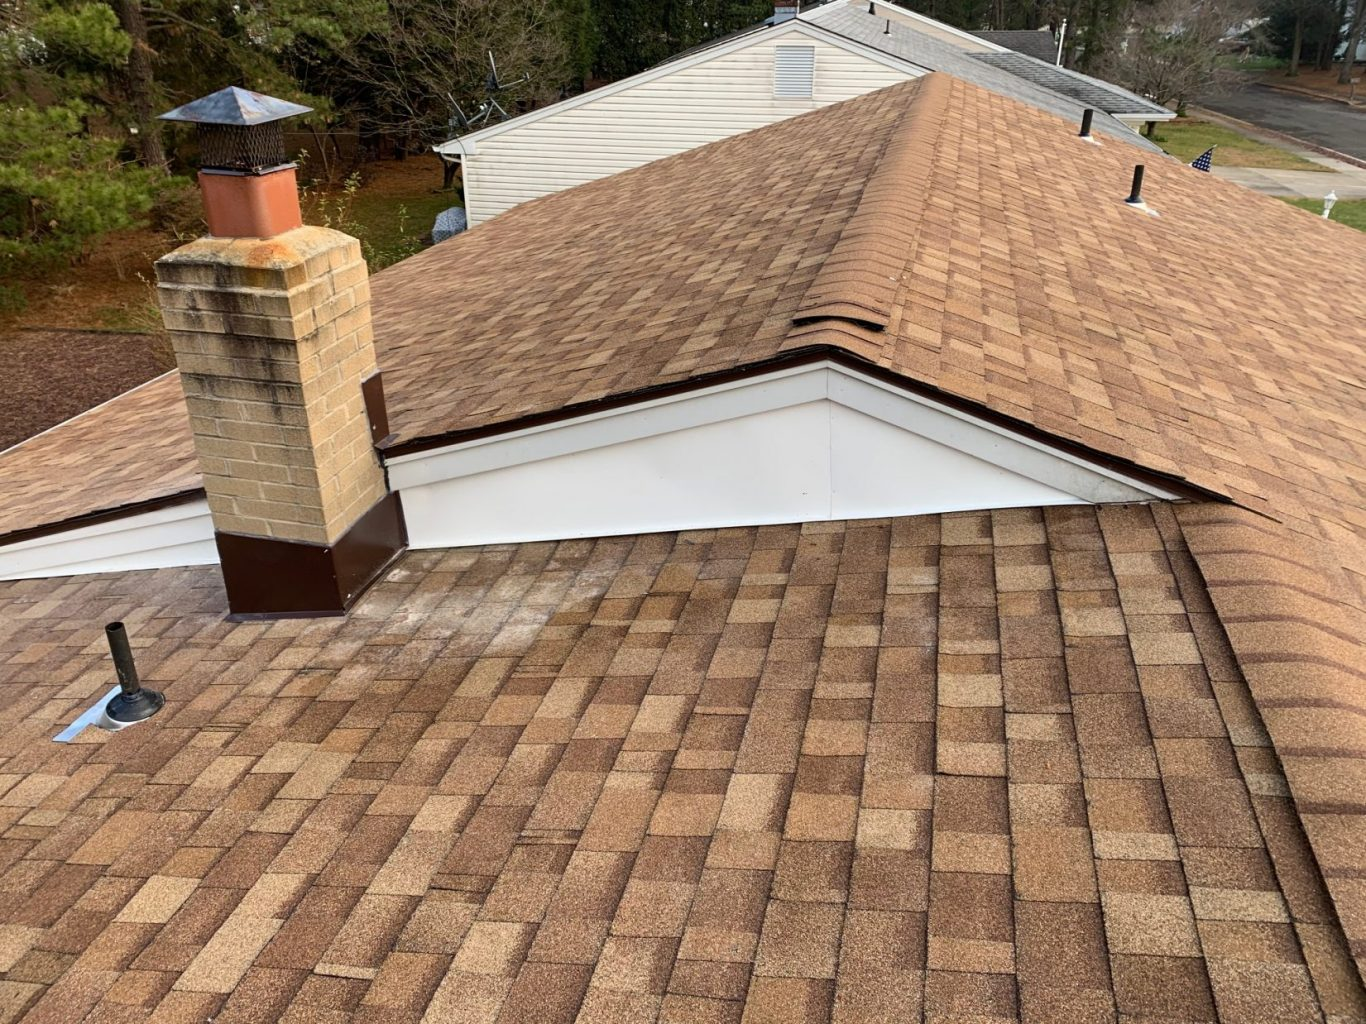 New Roof at 18 Zeeland Drive Toms River, NJ